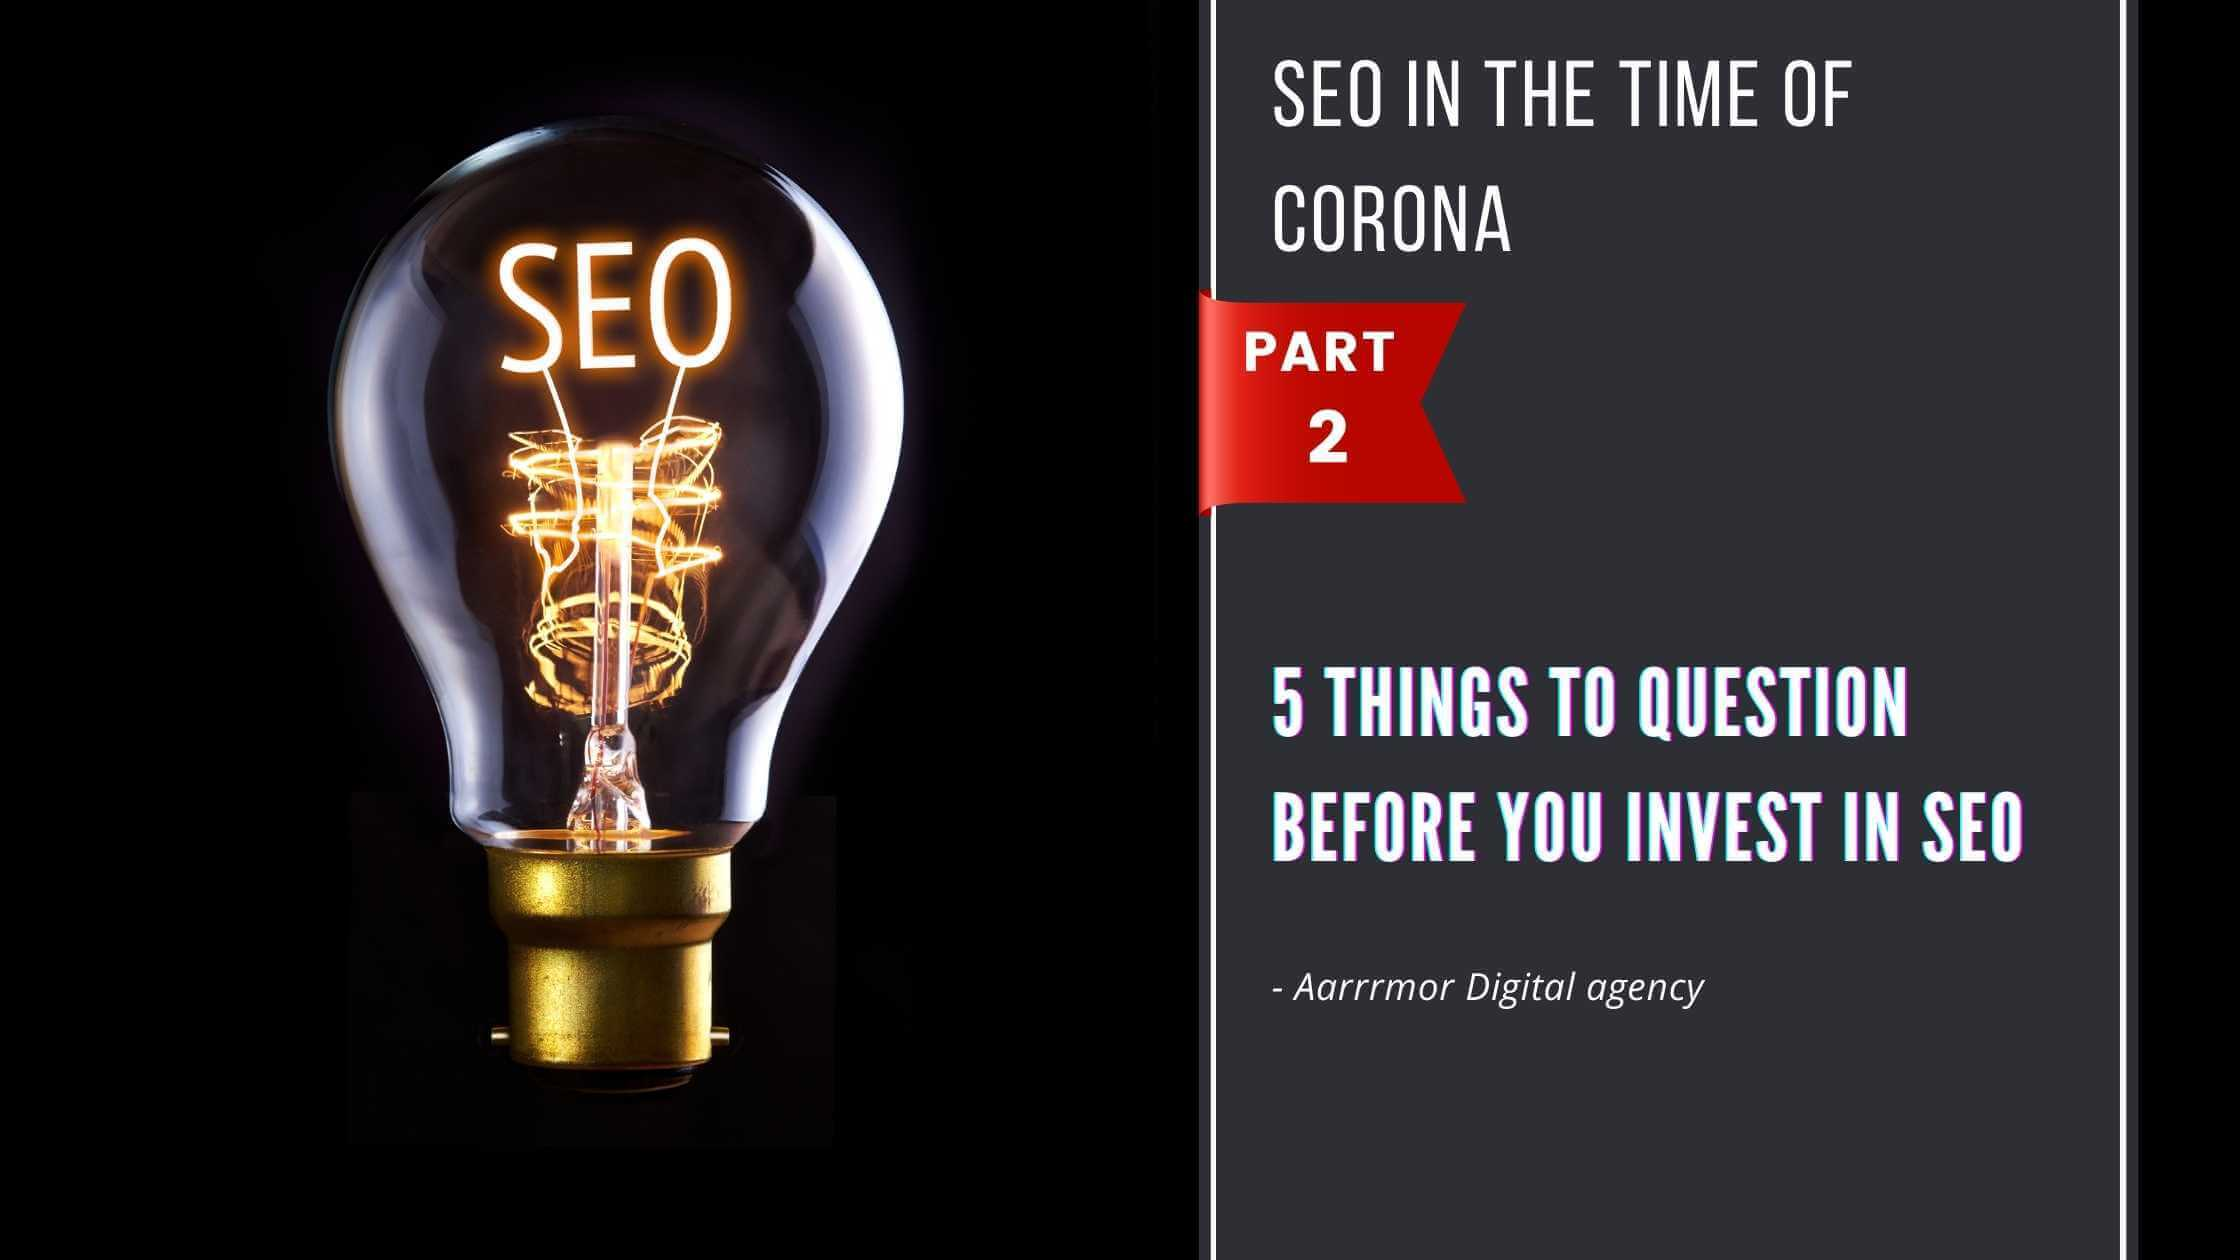 5 Things to question before you invest in SEO (Part 2)